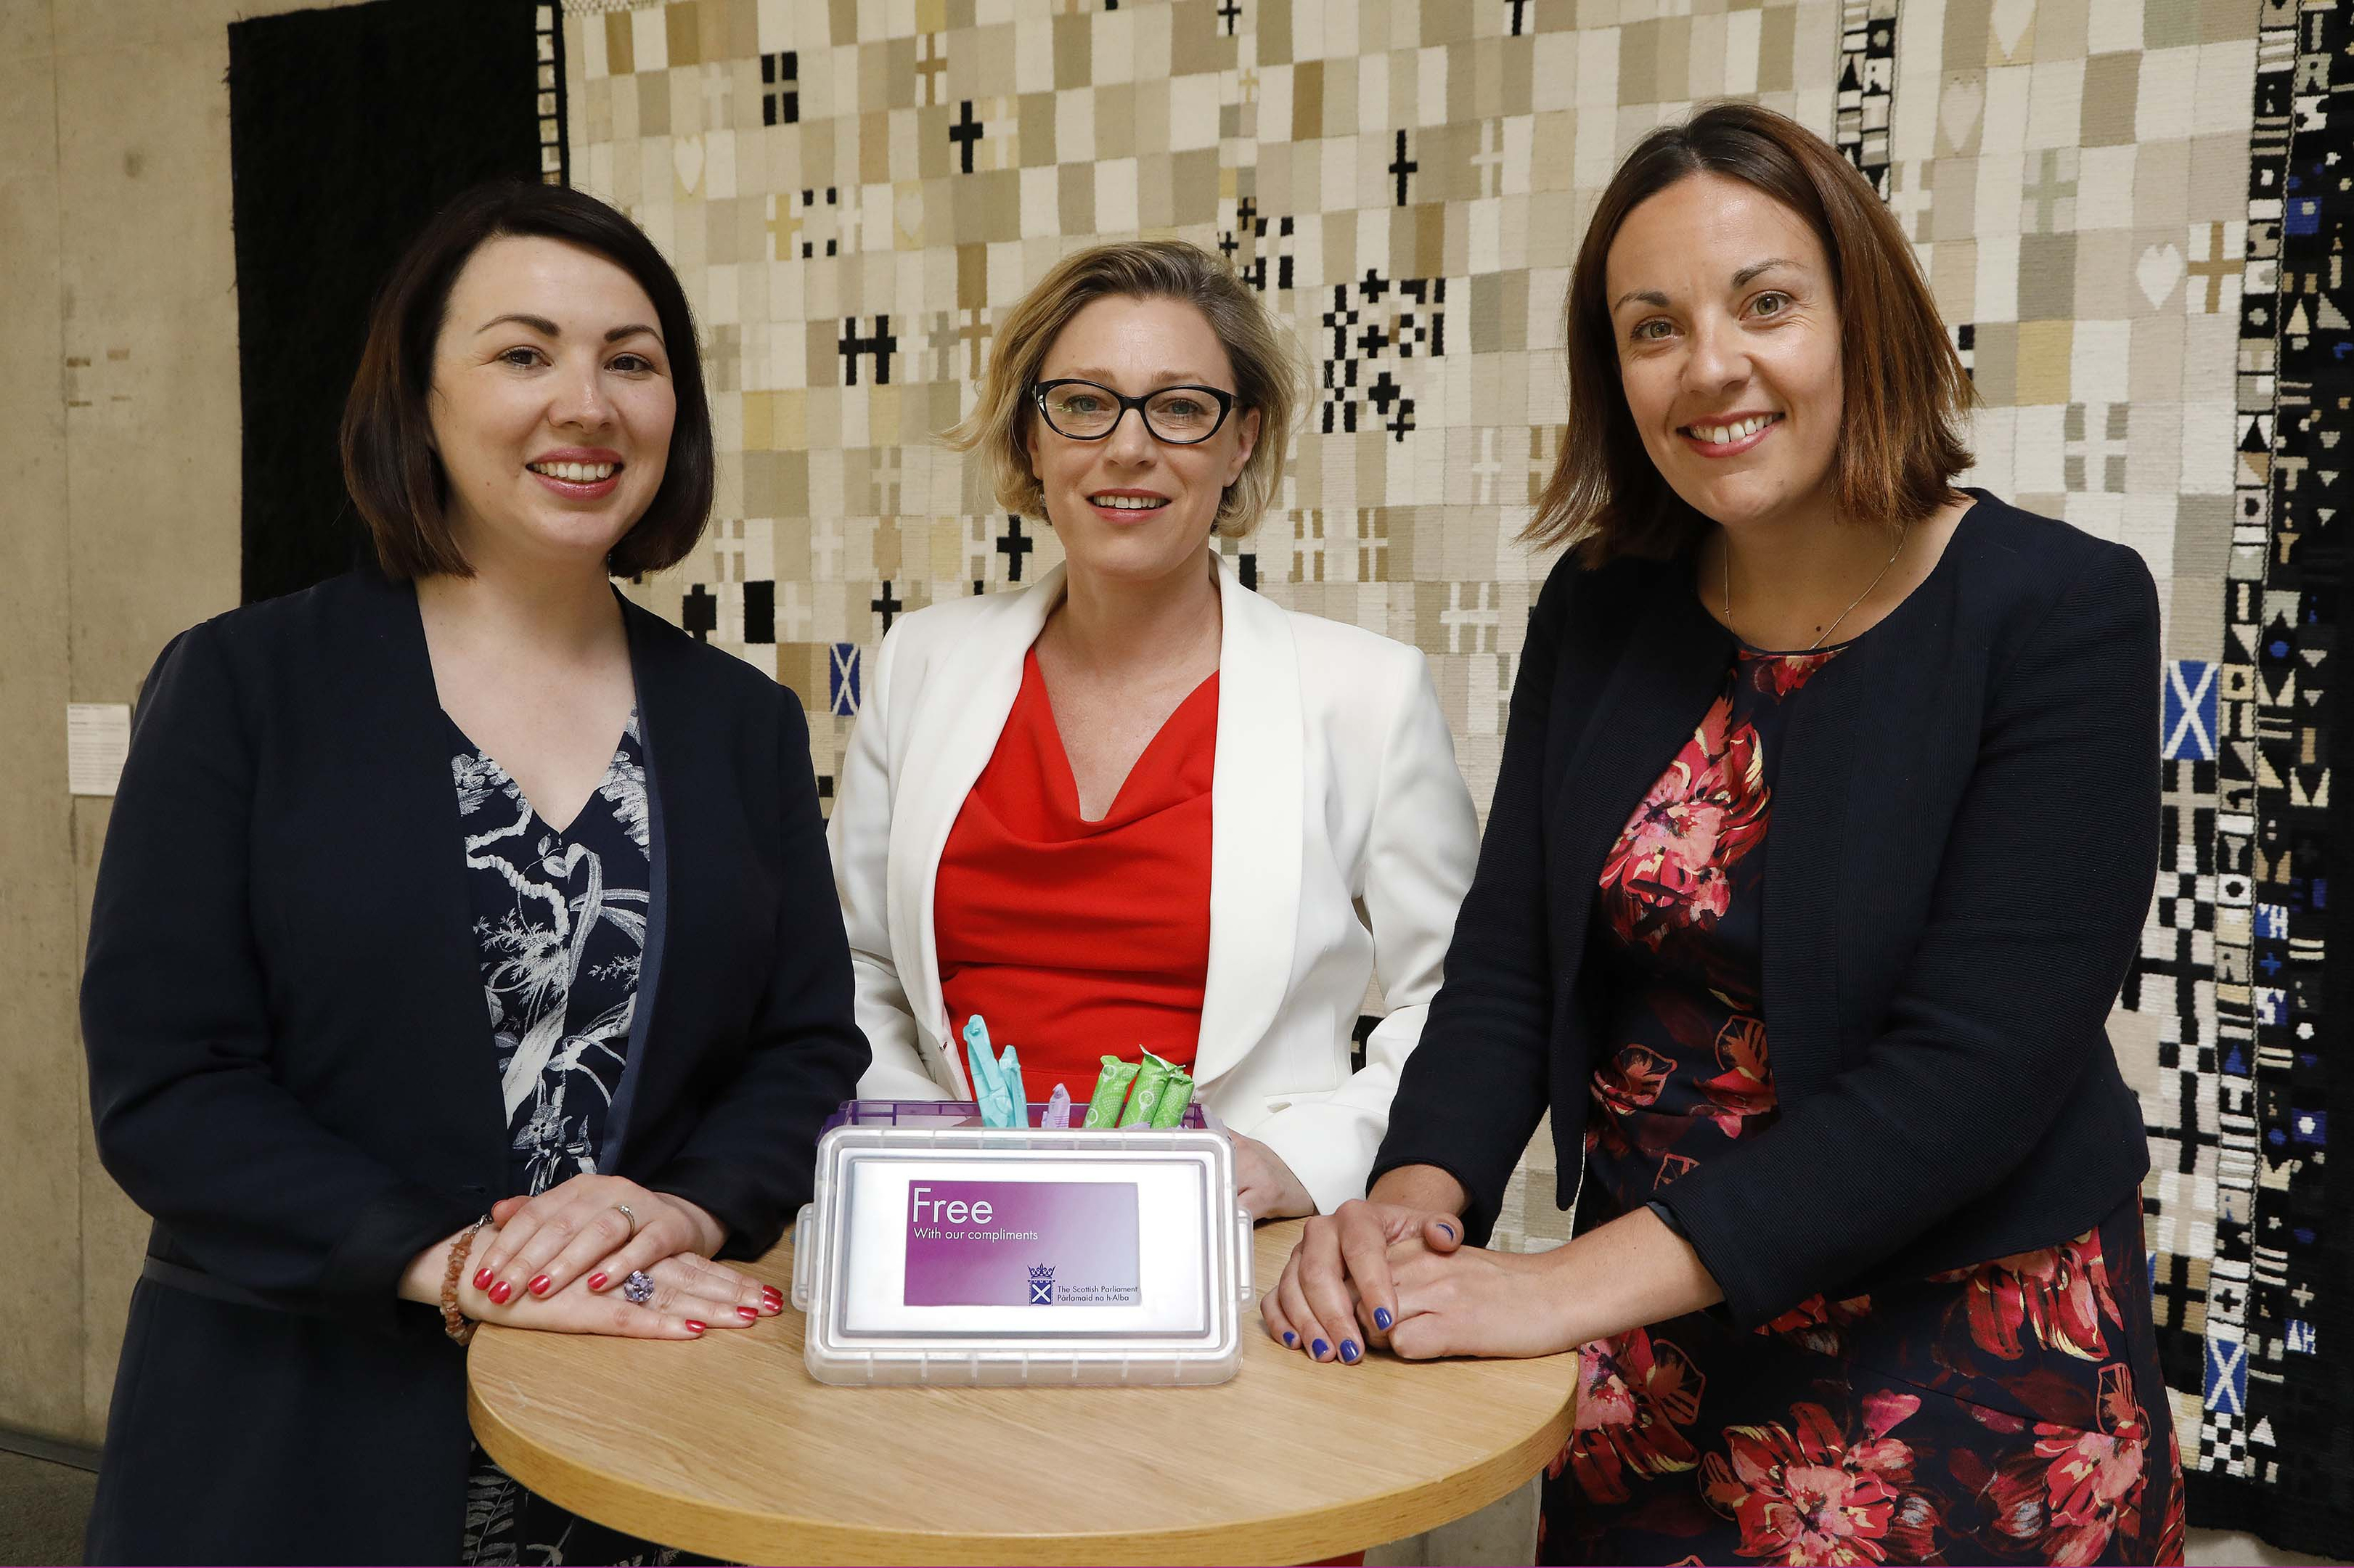 Monica Lennon MSP, Gillian Martin MSP and Kezia Dugdale MSP at the launch the free sanitary products for women initiative at the Scottish Parliament (Andrew Cowan/Scottish Parliament/PA Wire)